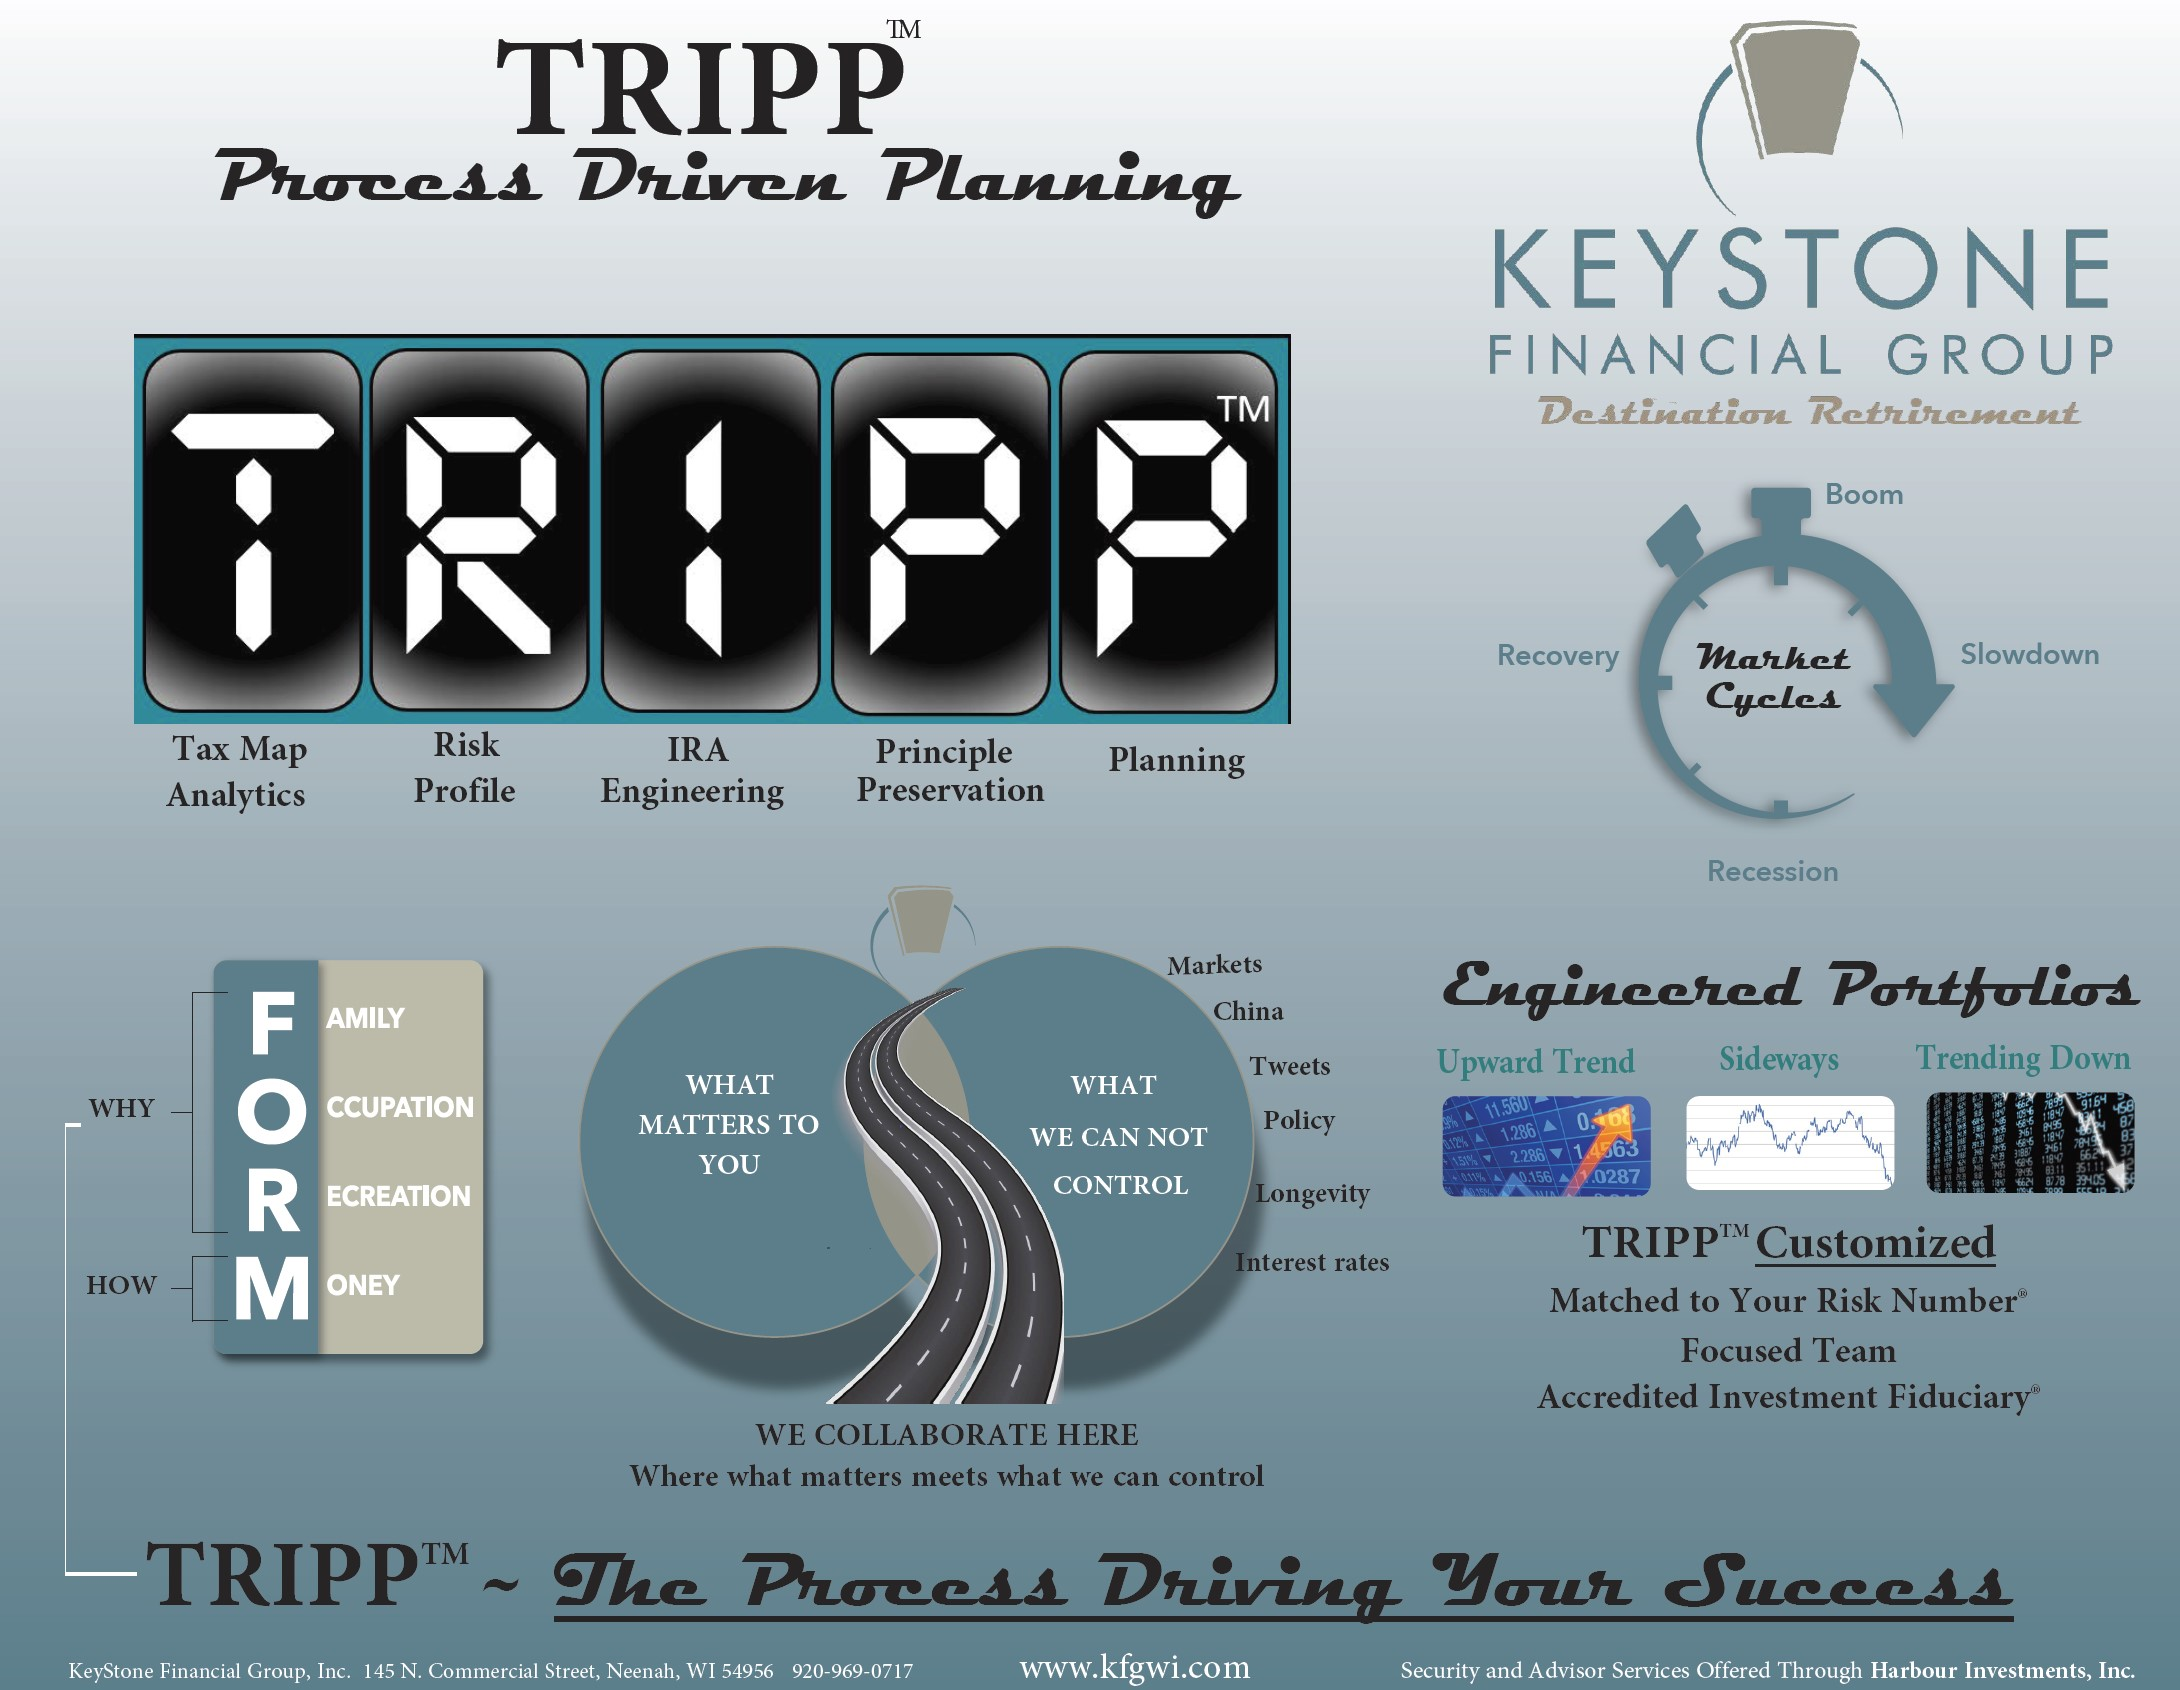 Keystone Financial Group - TRIP Process - Destination Retirement